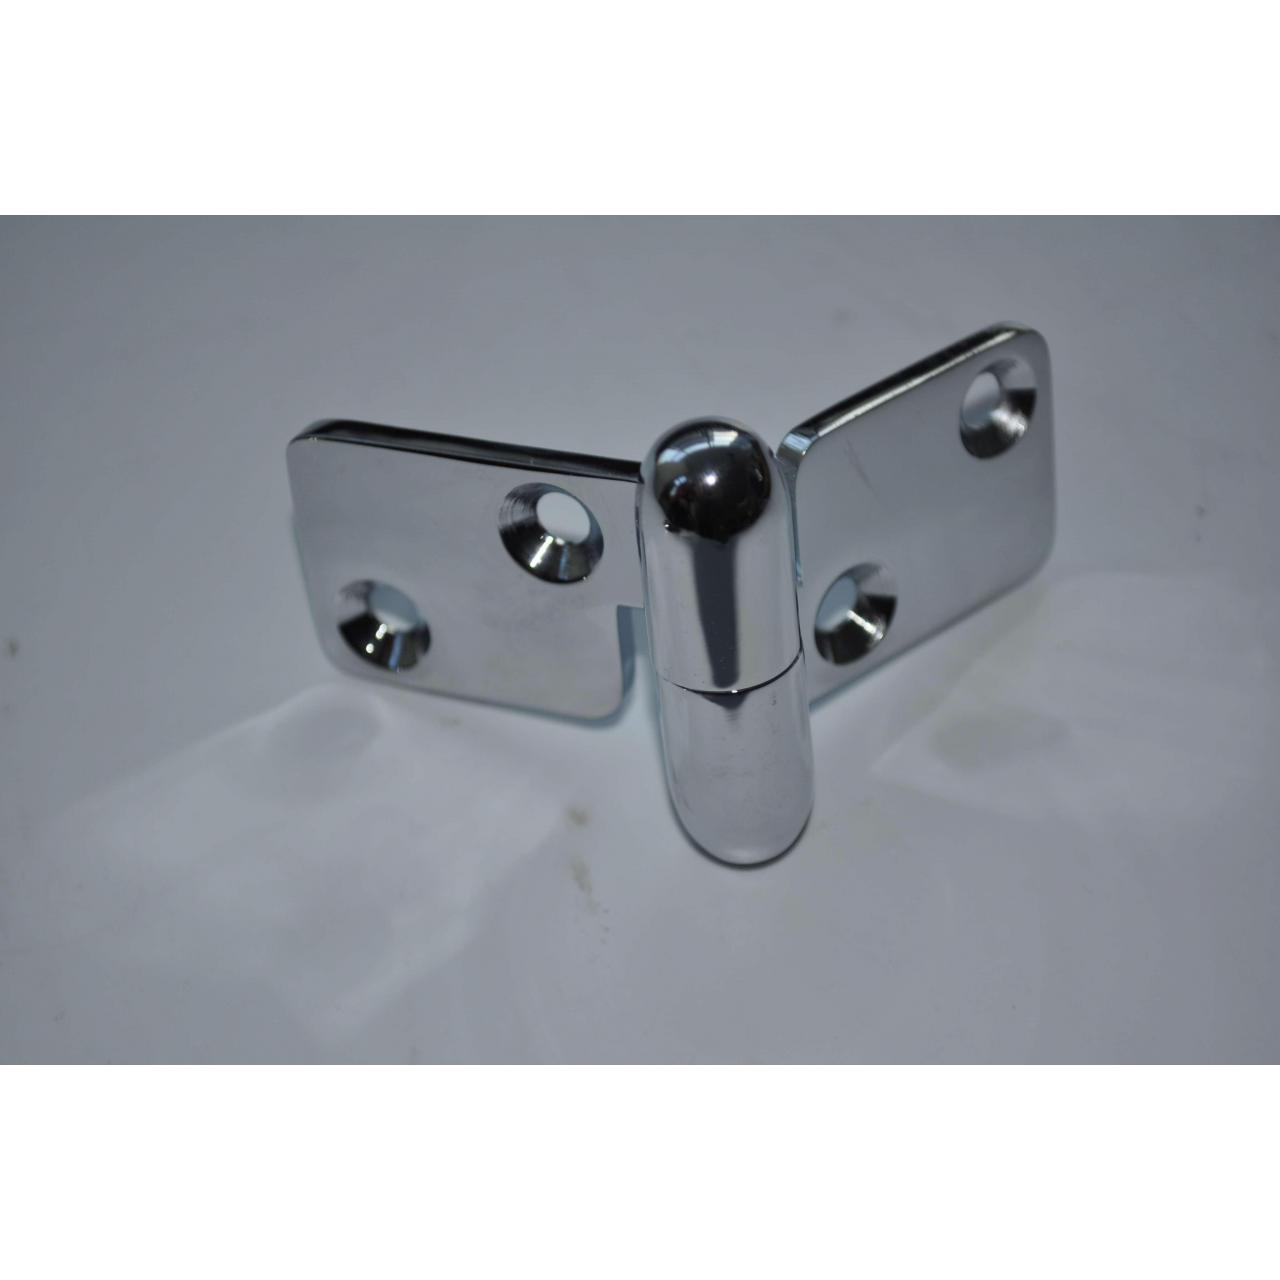 Marine Hardware Stainless Steel Strap Hinge for Boat